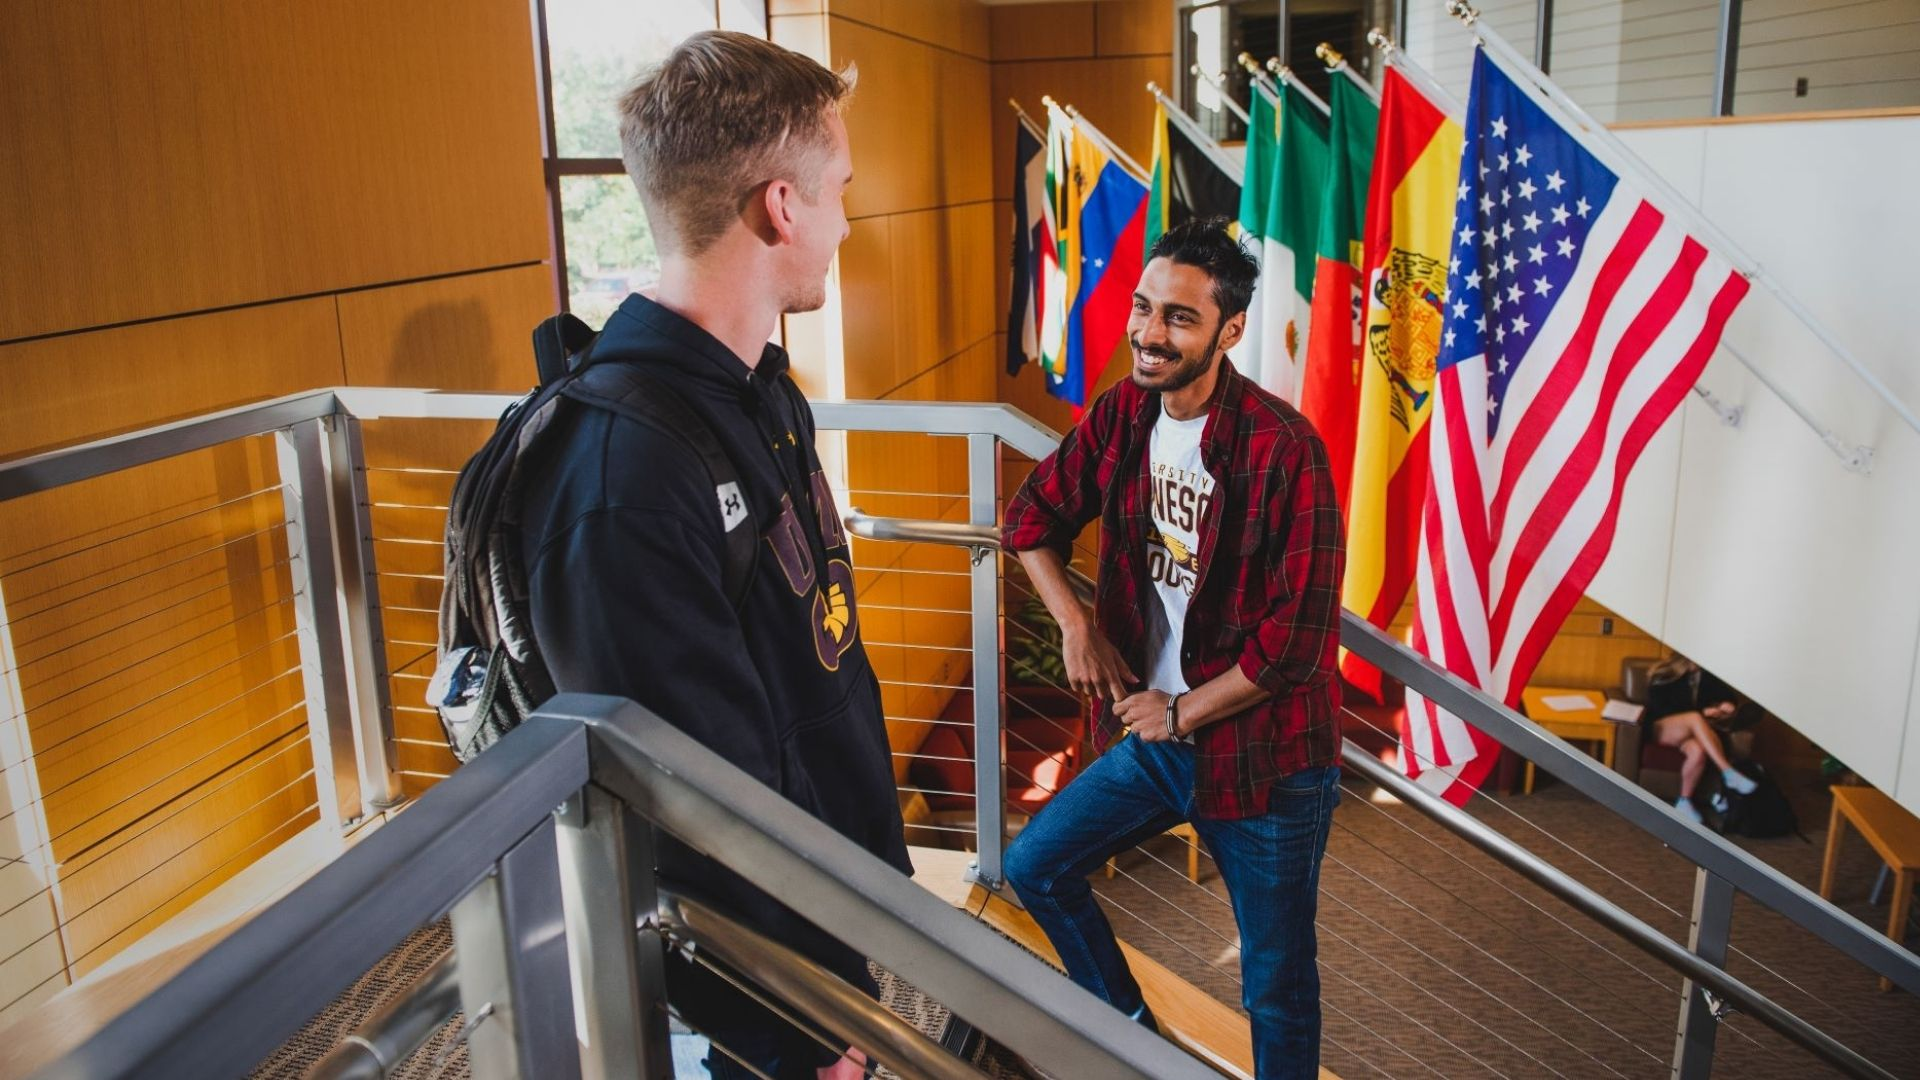 student talking in front of international flags